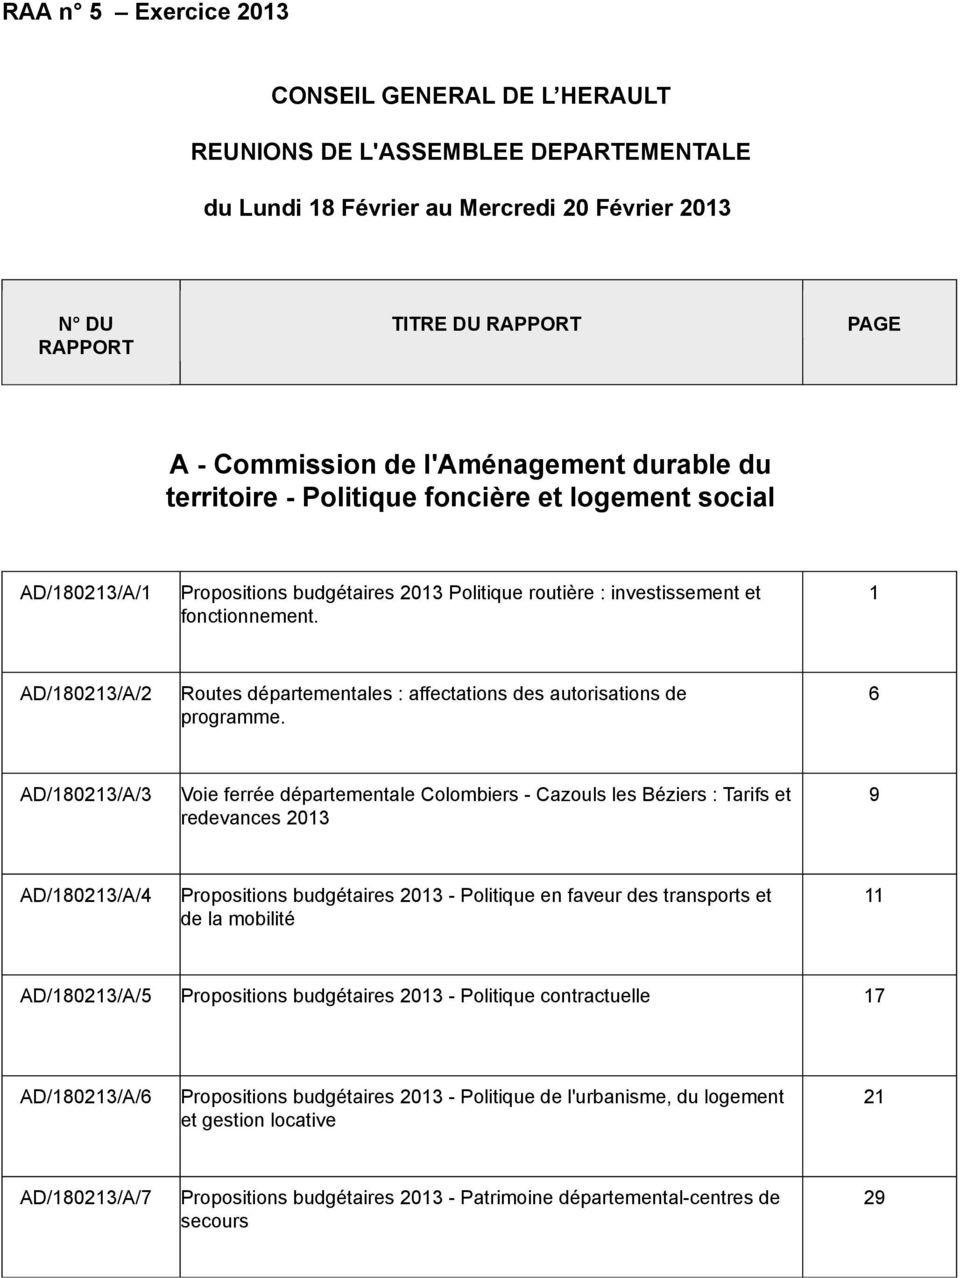 1 AD/180213/A/2 Routes départementales : affectations des autorisations de programme.